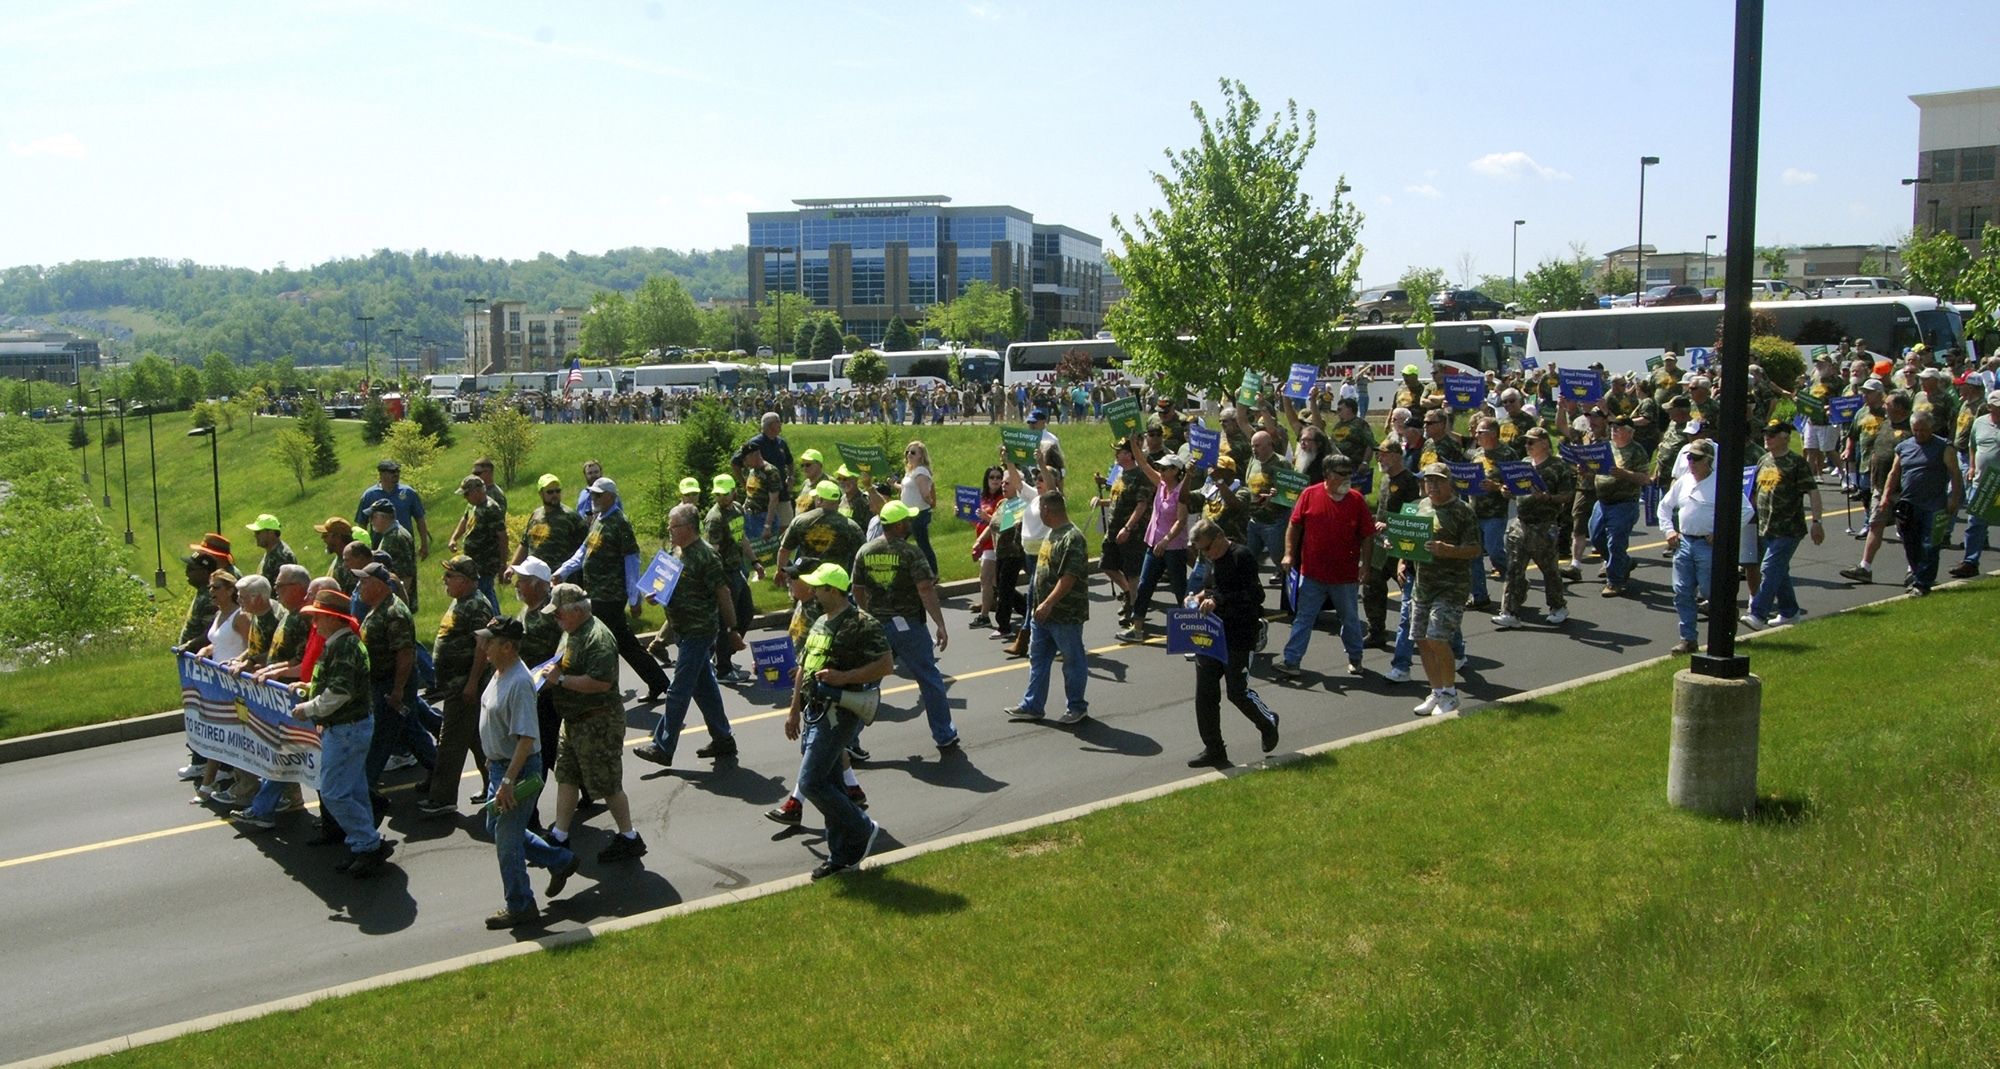 Consol Energy-Protest-4 With their president, Cecil Roberts, leading the way, an estimated fifteen hundred UMWA members who attended a Wednesday, May 17, 2017, protest rally march in front of Consol headquarters in Southpointe, Pa., and onto Consol property. Roberts and Richard Fink, a retired miner and former Armstrong County commissioner, were subsequently arrested by Cecil Township police for trespassing. The union said Wednesday morning's rally was to protest what it called attempts by the company to reduce health benefits for retirees and to protect pensions of retired coal miners. (Mark Marietta /Observer-Reporter via AP)